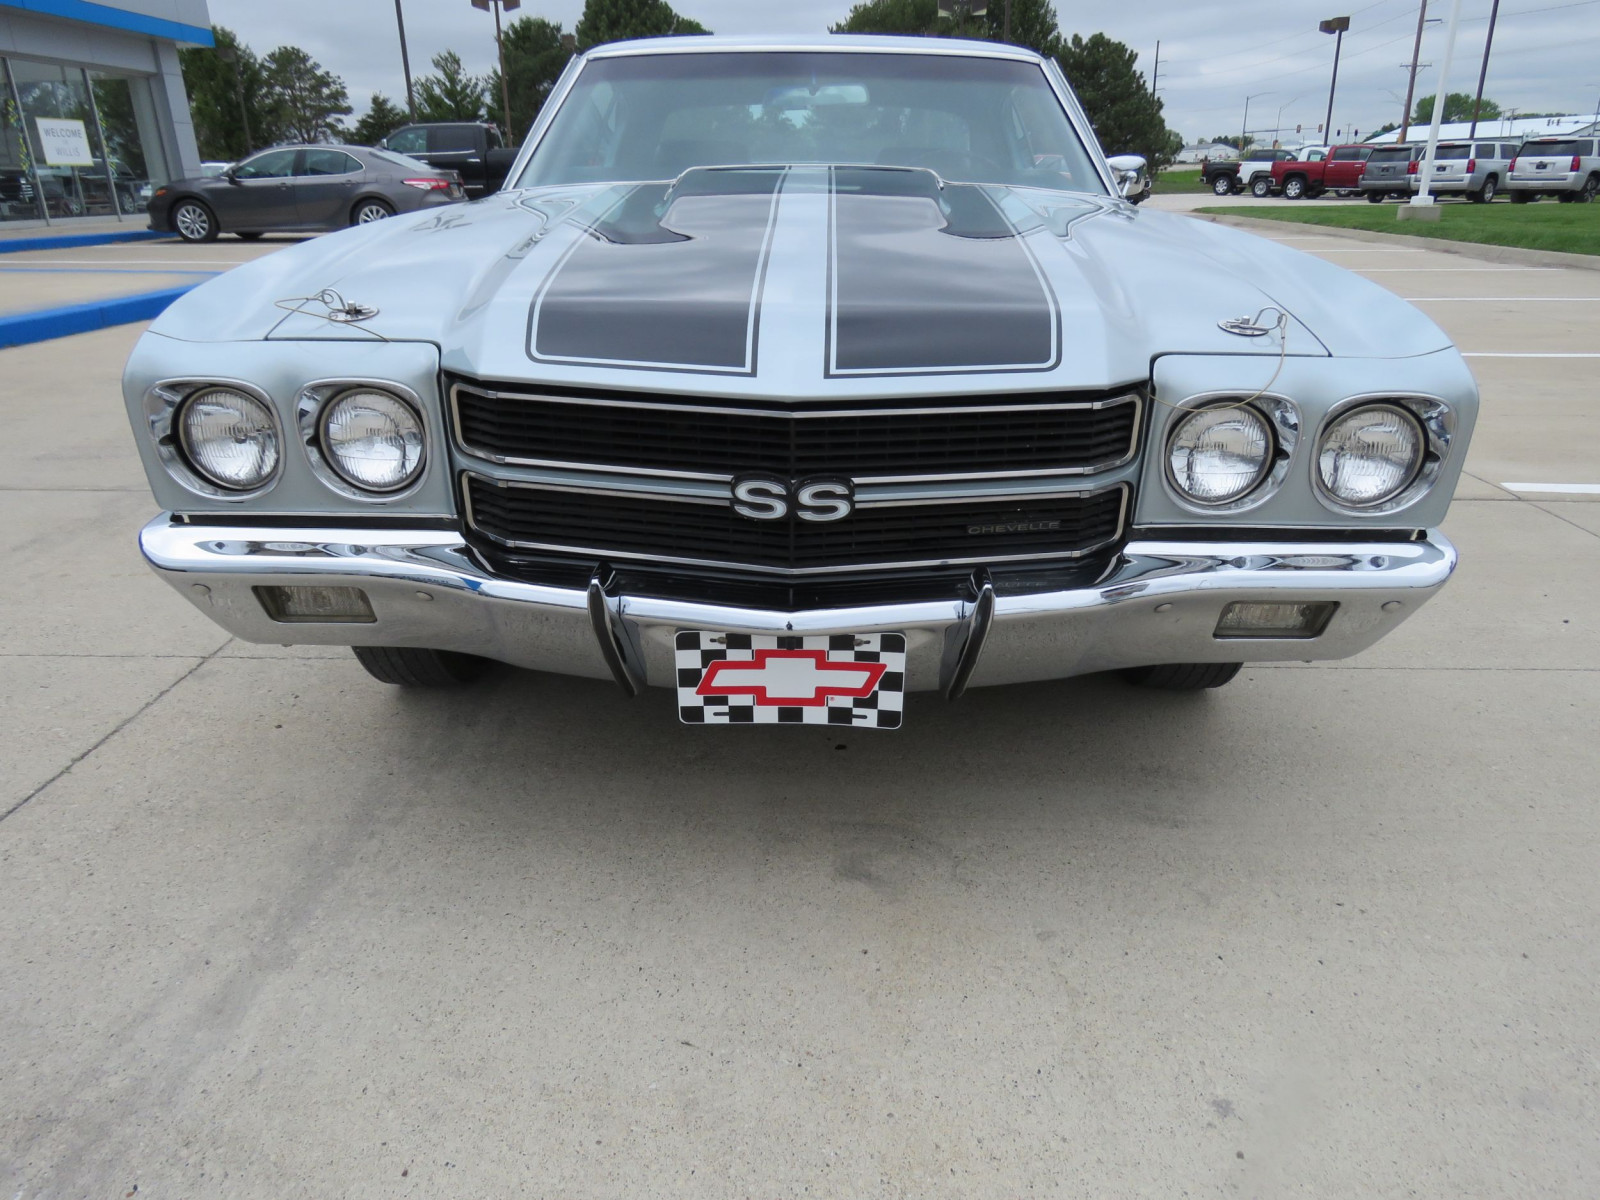 1970 Chevrolet Chevelle SS Coupe - Image 4